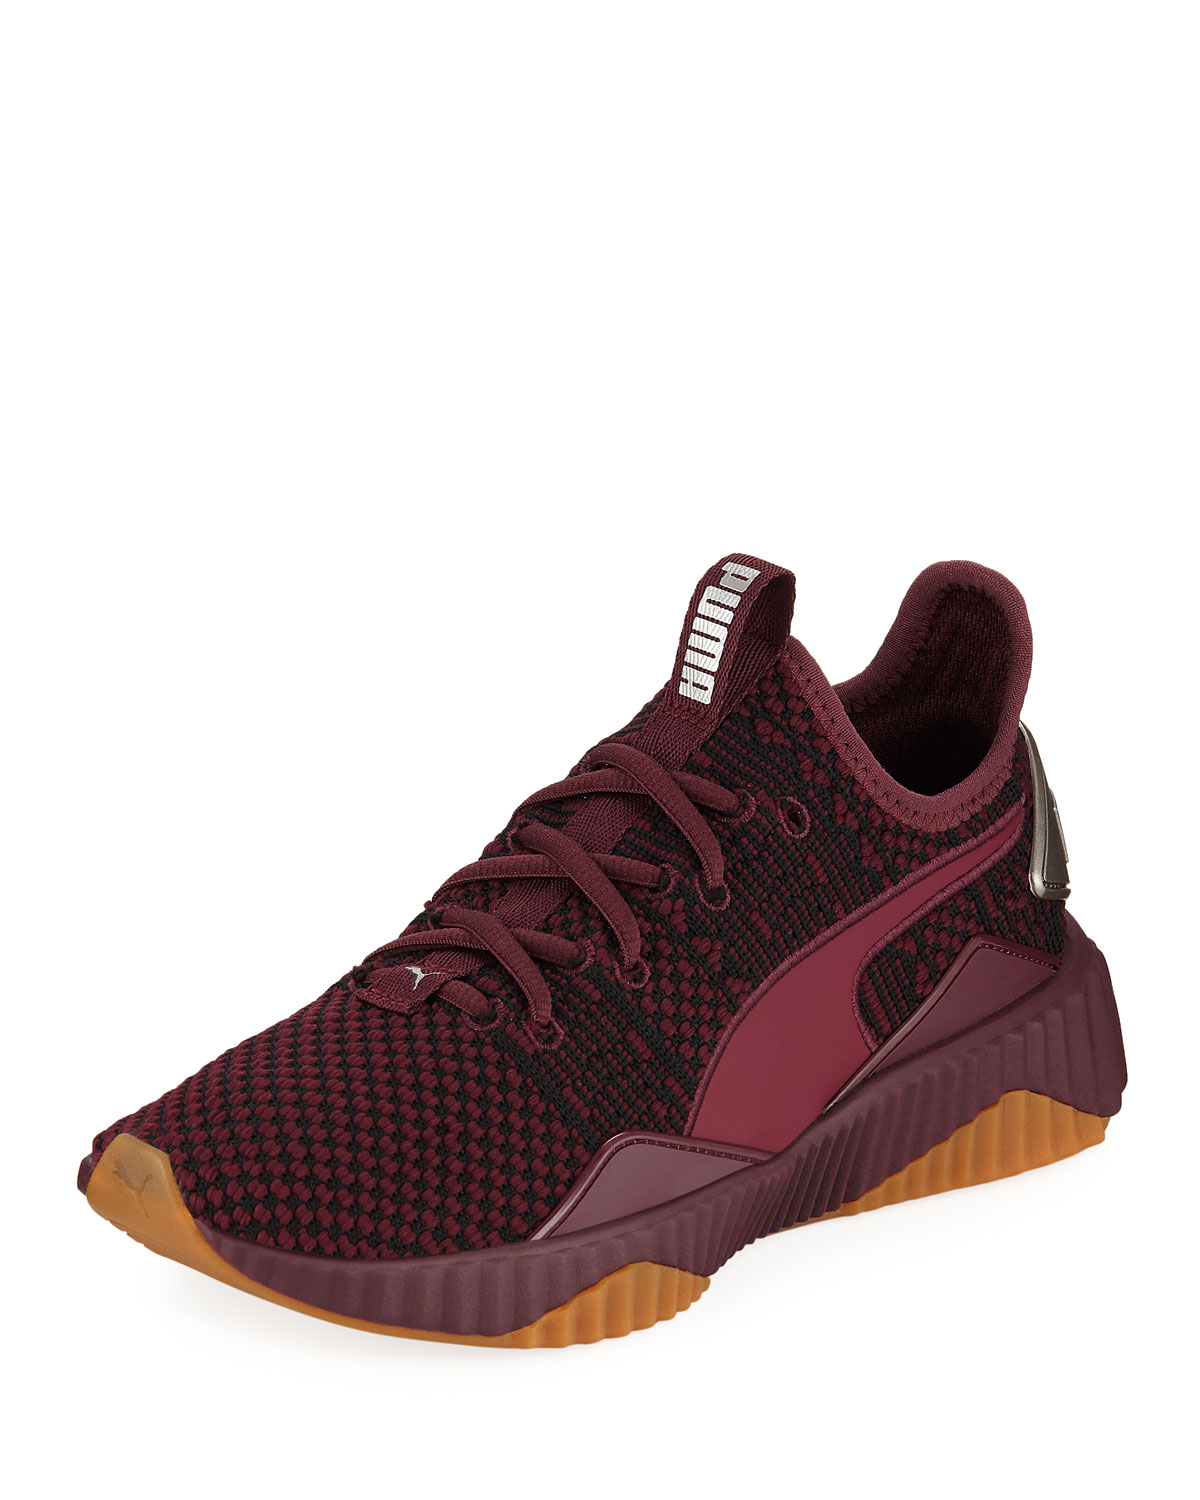 a0f8c92ba7a Puma Defy Luxe Chunky Sneakers